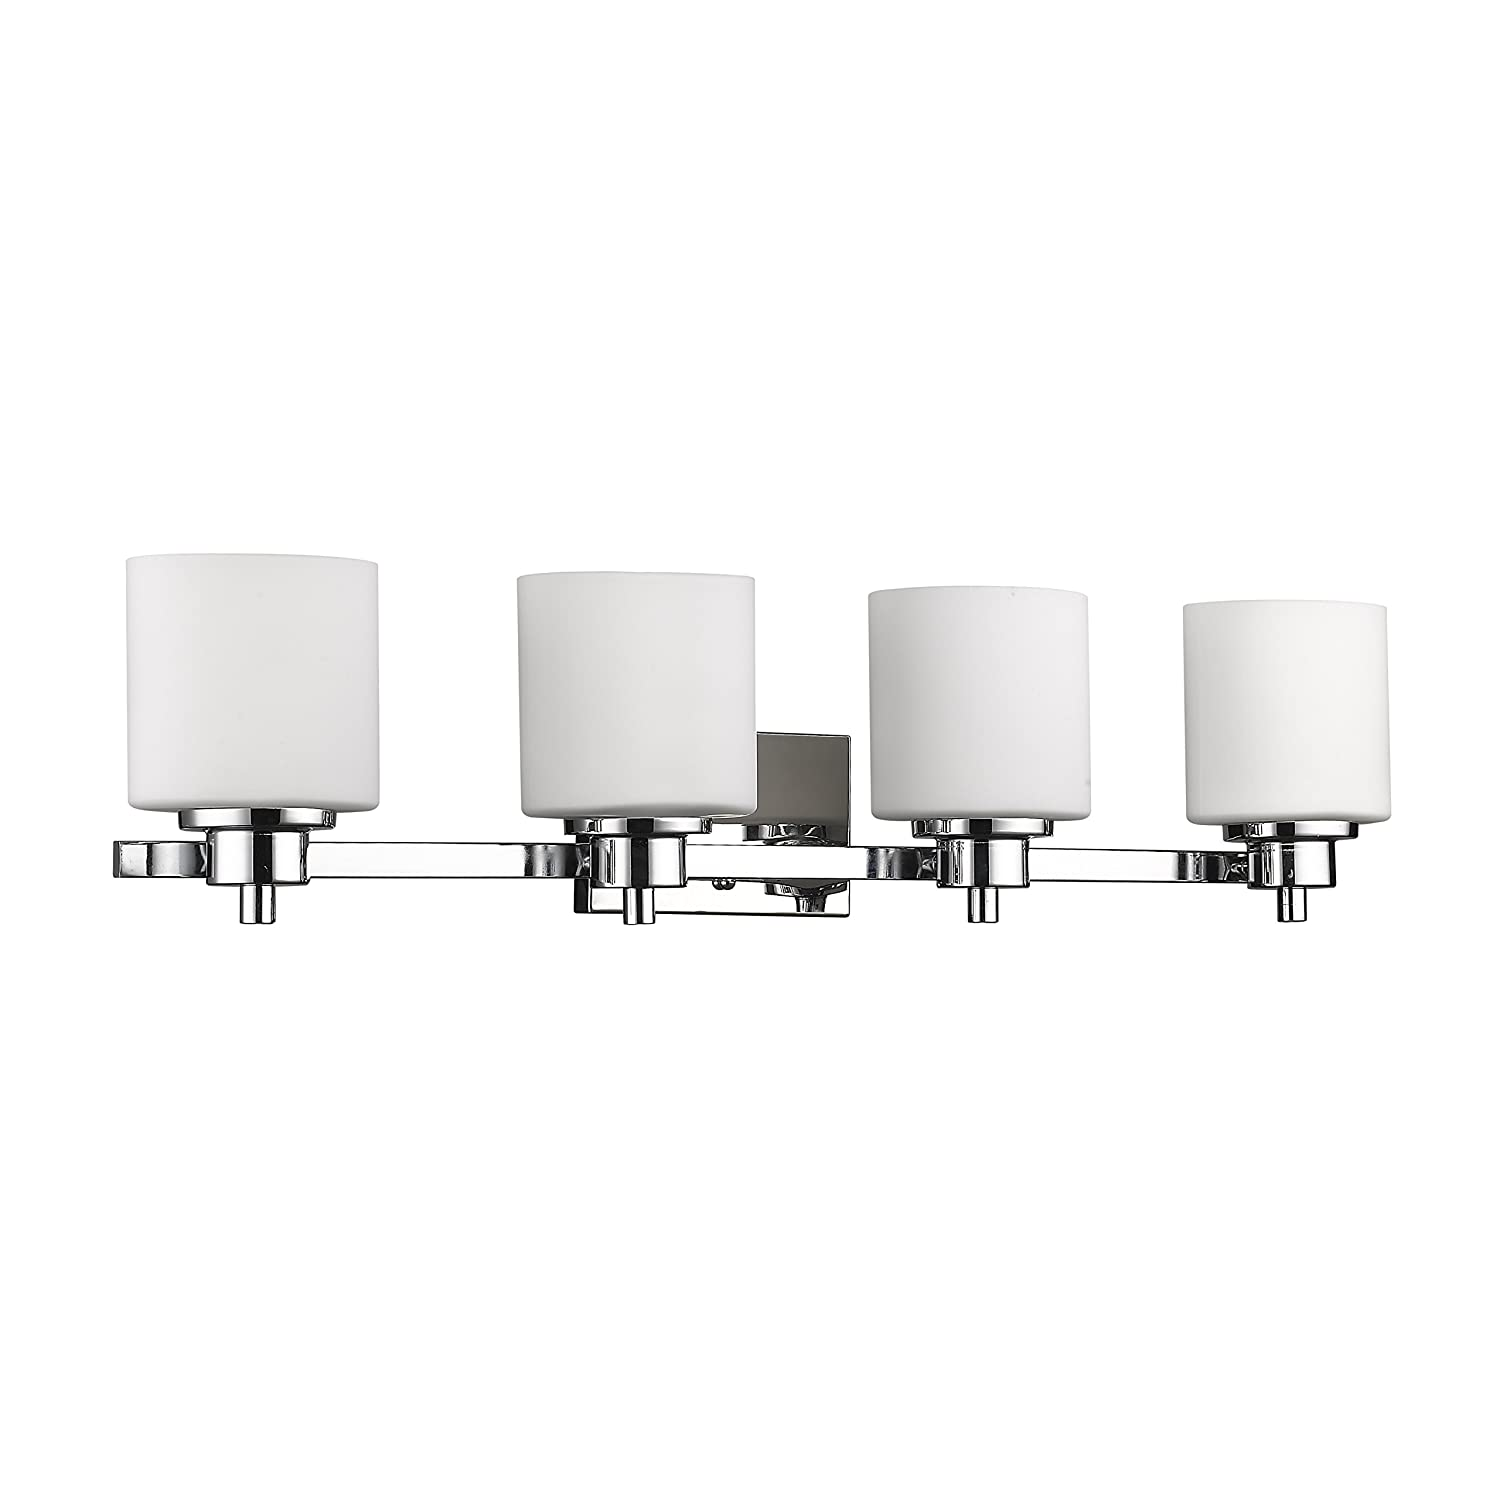 Chloe Lighting CH821036CM33-BL4 Contemporary 4 Light Chrome Finish Bath Vanity Wall Fixture Alabaster Glass, 33 Wide, White